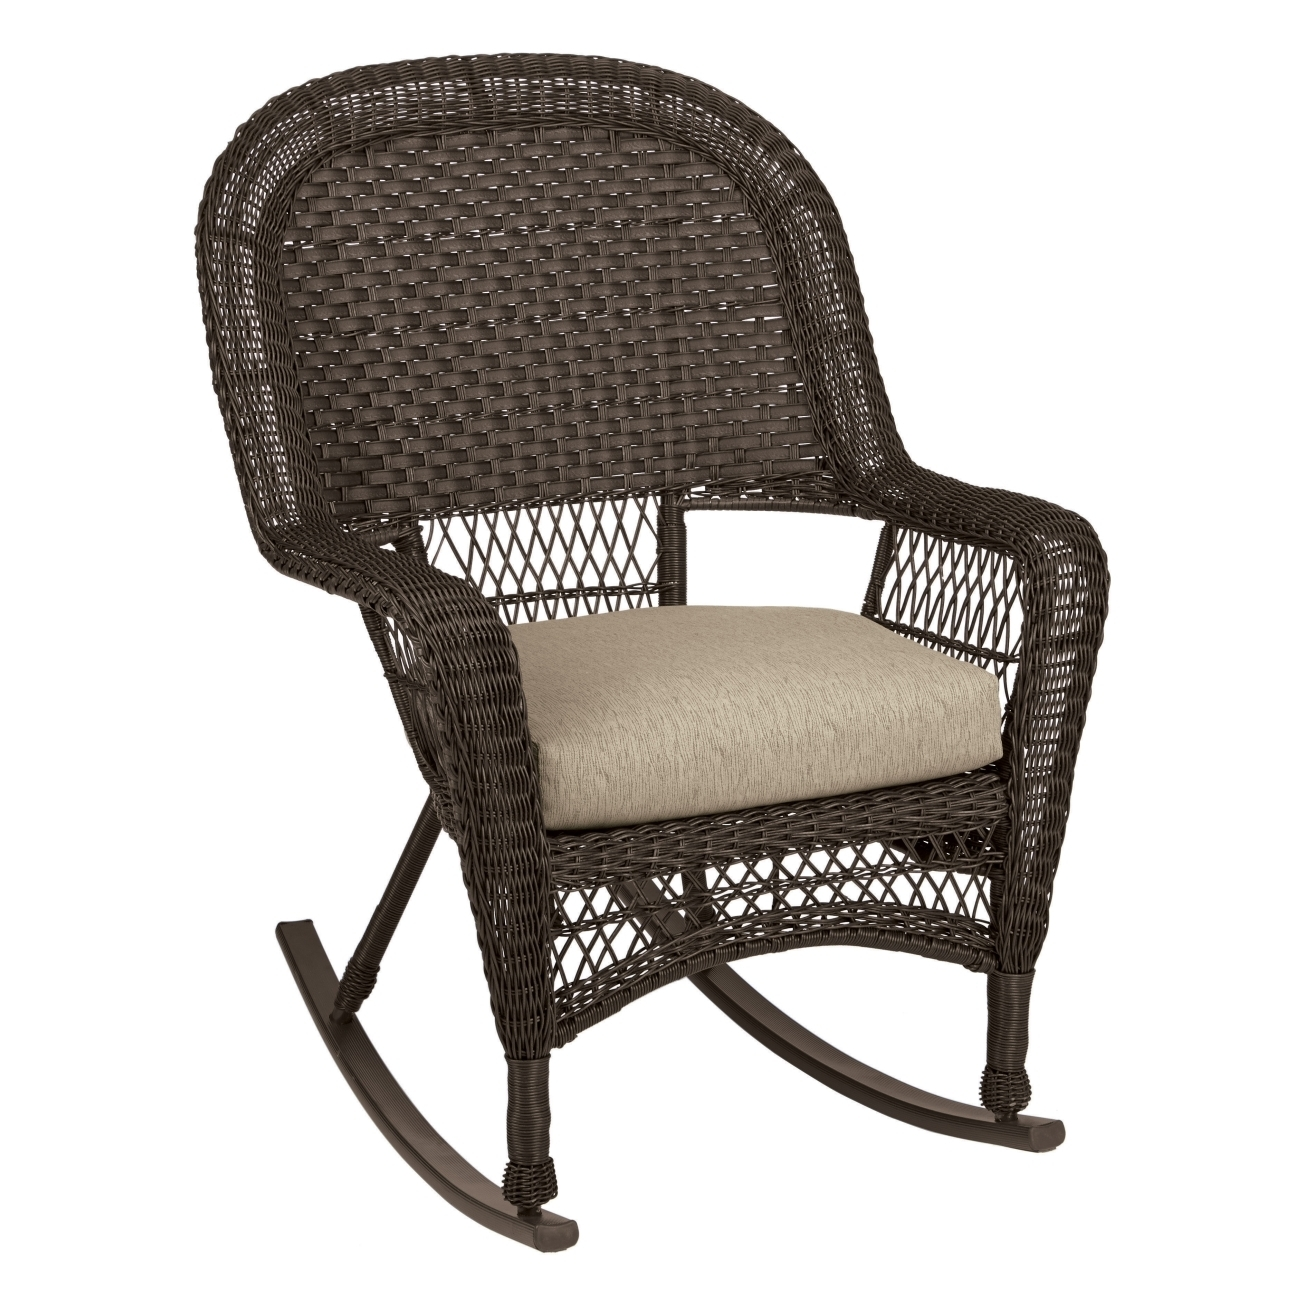 Chair | Rattan Chair Wicker Furniture Resin Wicker Rocking Chairs Pertaining To Resin Patio Rocking Chairs (#2 of 15)